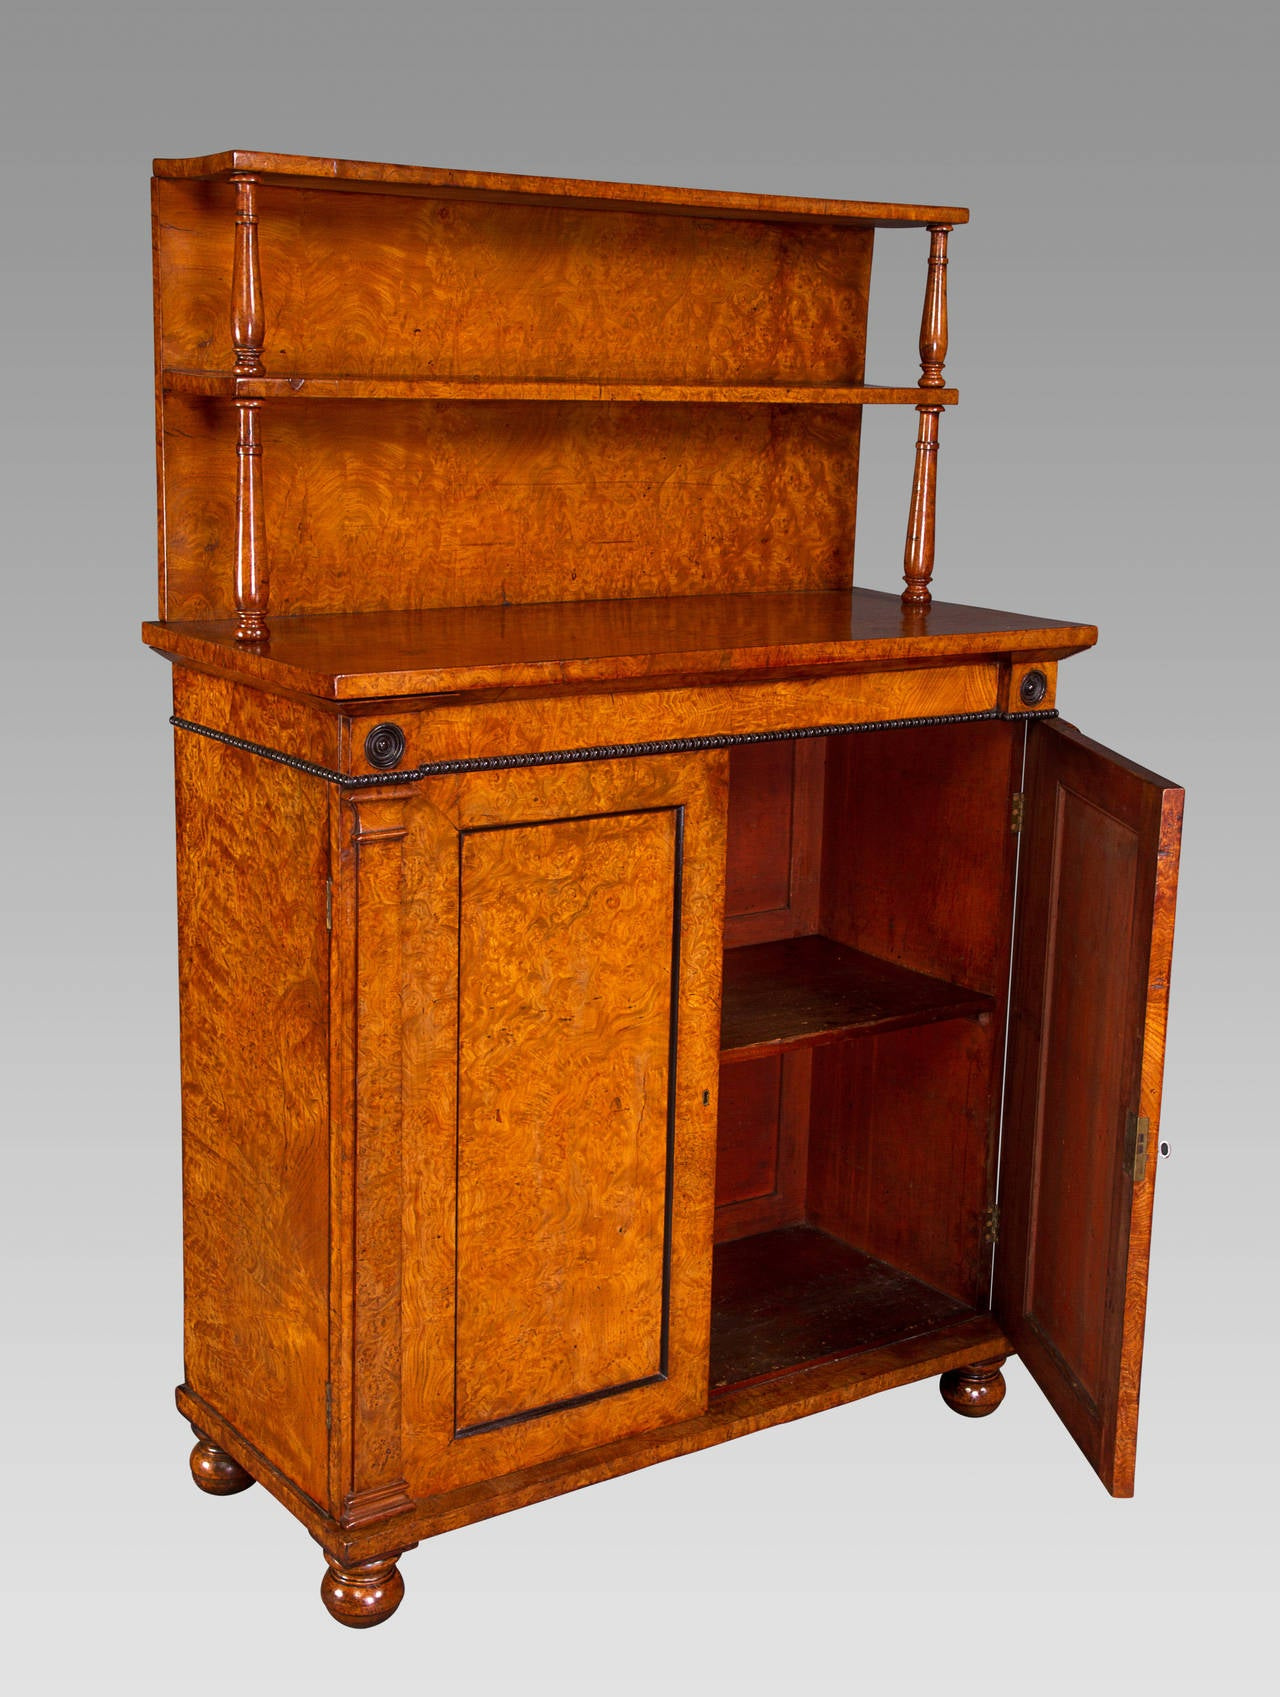 19th Century Superb Quality Regency Chiffonier Cabinet of Small Proportions For Sale